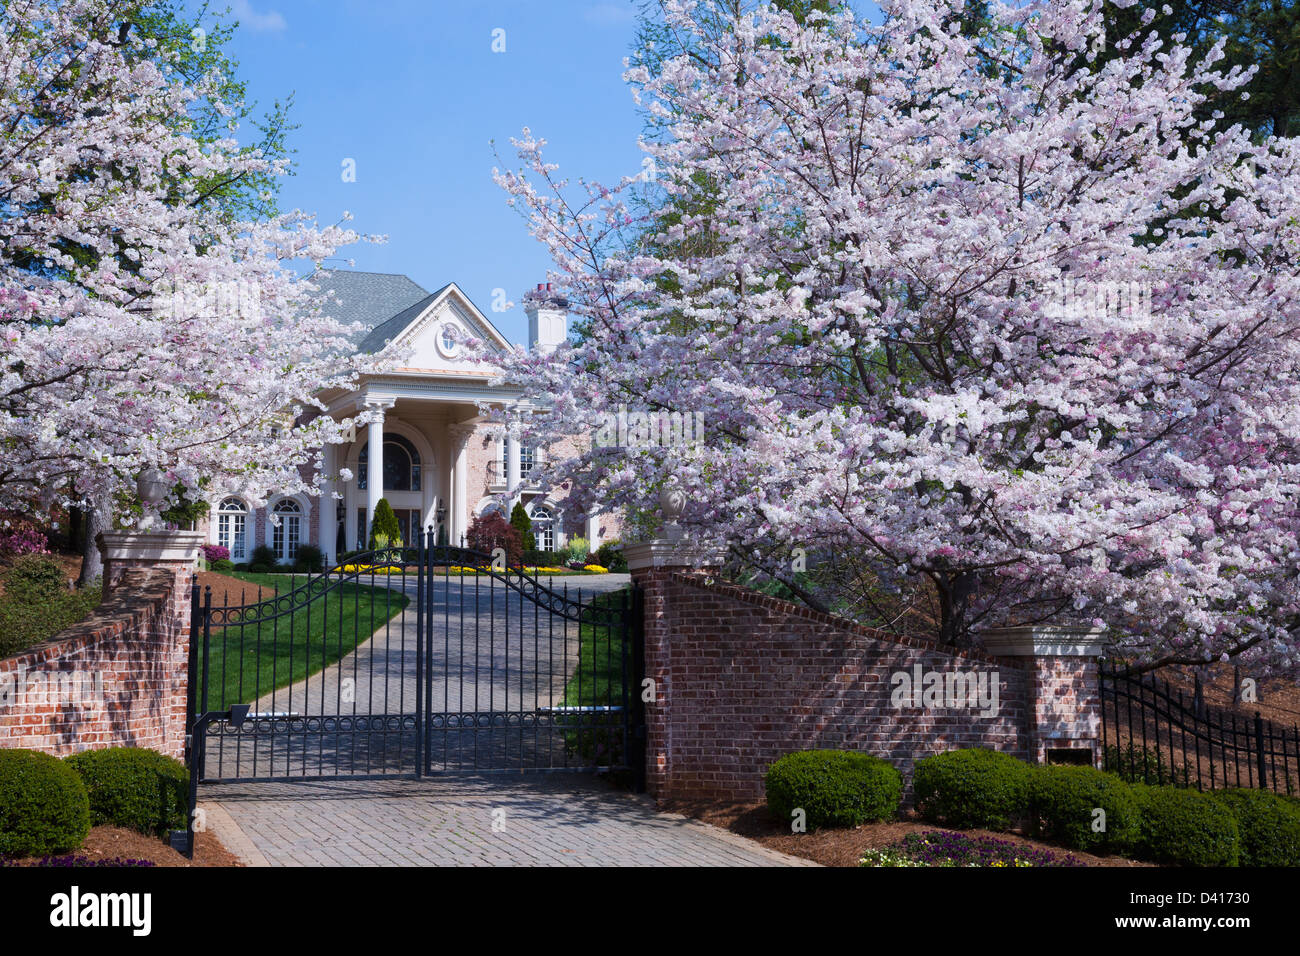 Colorful spring pink cherry blossom on cherry trees in full bloom at colorful spring pink cherry blossom on cherry trees in full bloom at gated entrance to elegant stately home in atlanta georgia mightylinksfo